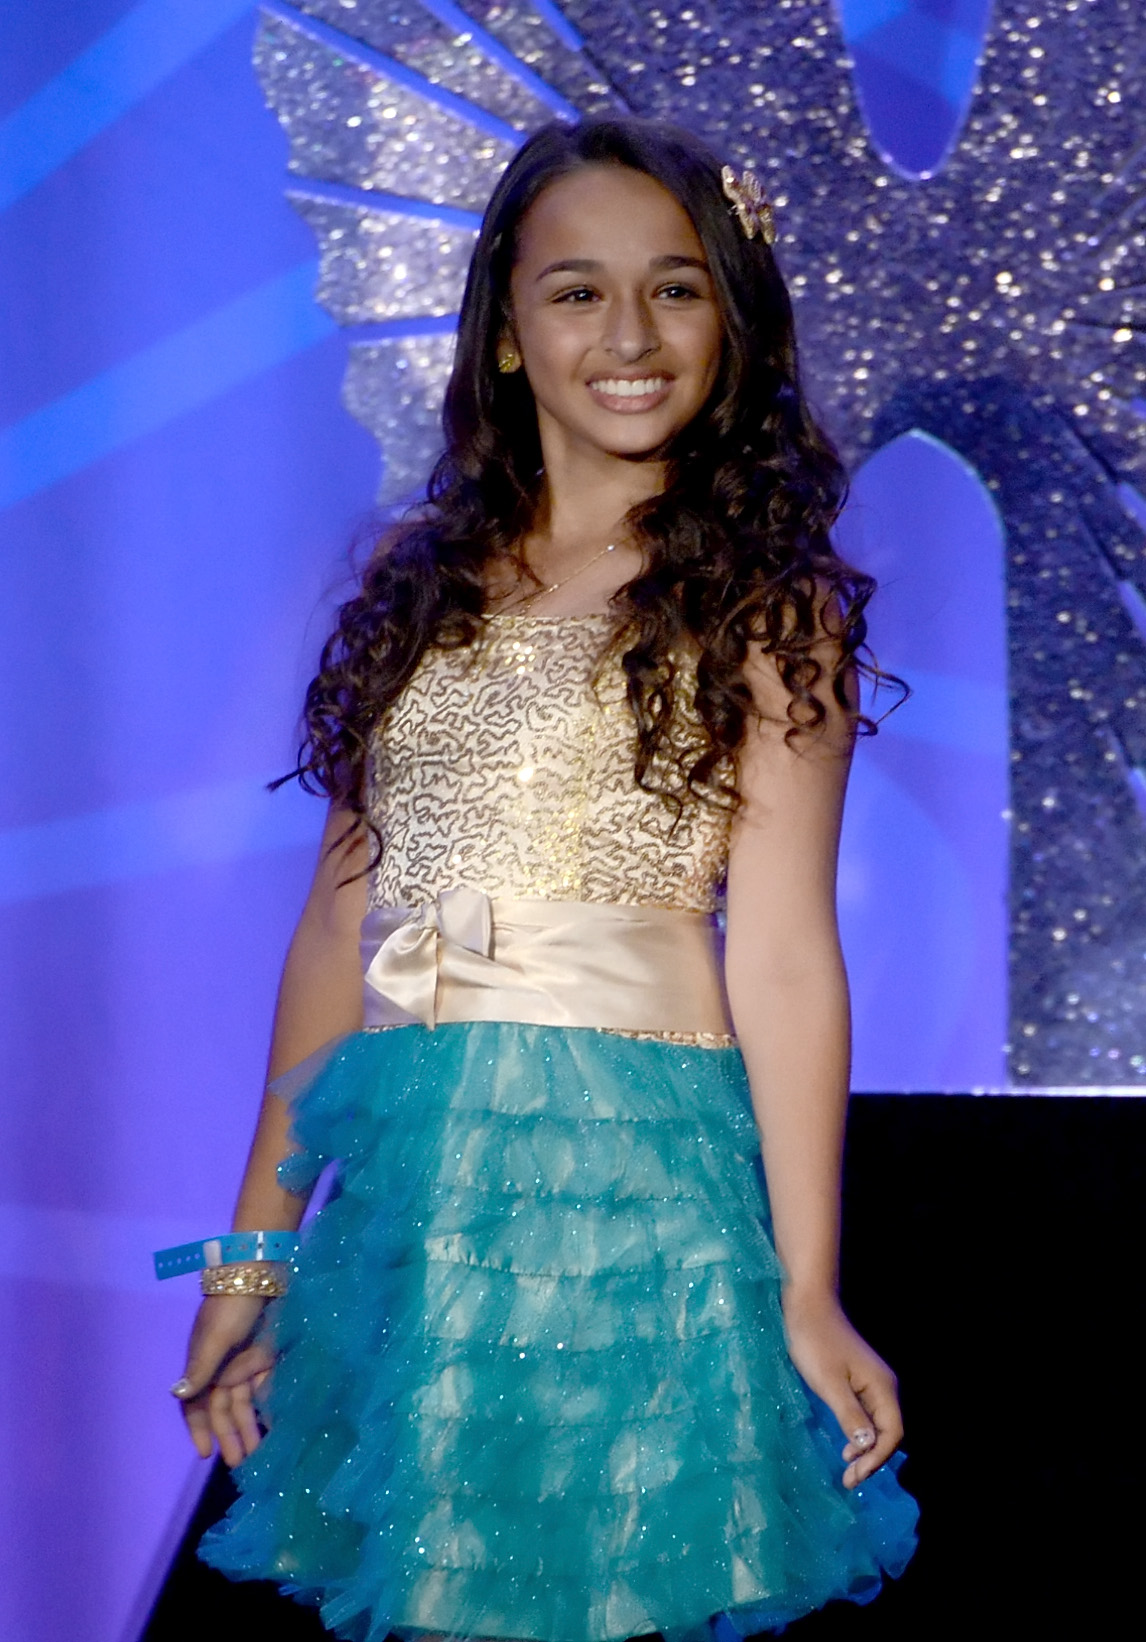 14 Year Old Transgender Activist Jazz Jennings Gets Her